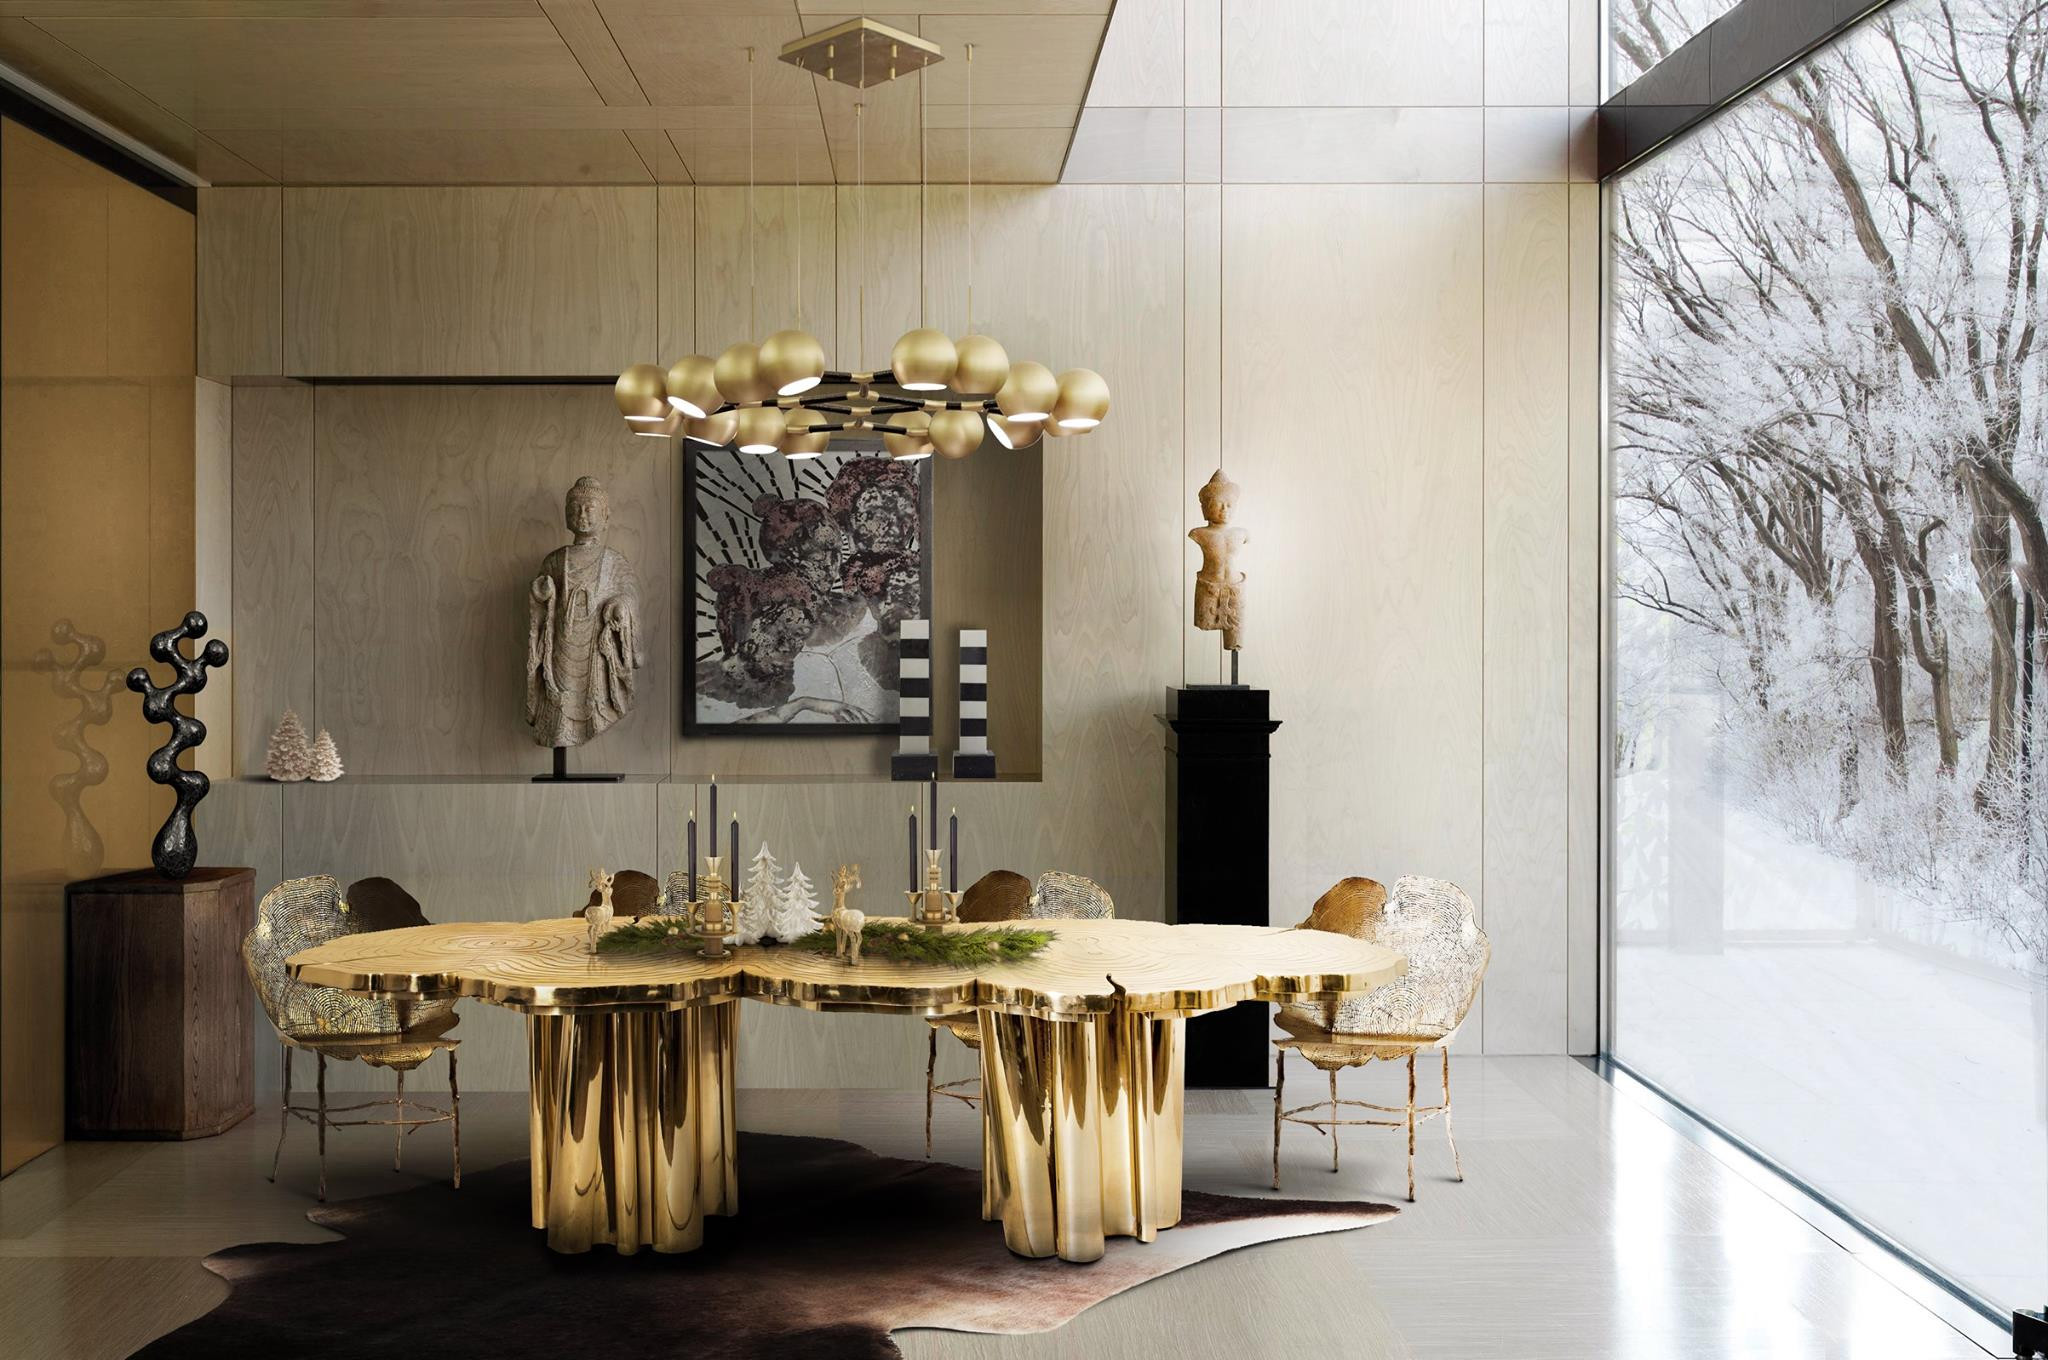 Black and Gold Dining Room Ideas the Best Black and Gold Decorating Ideas for Your Dining Room